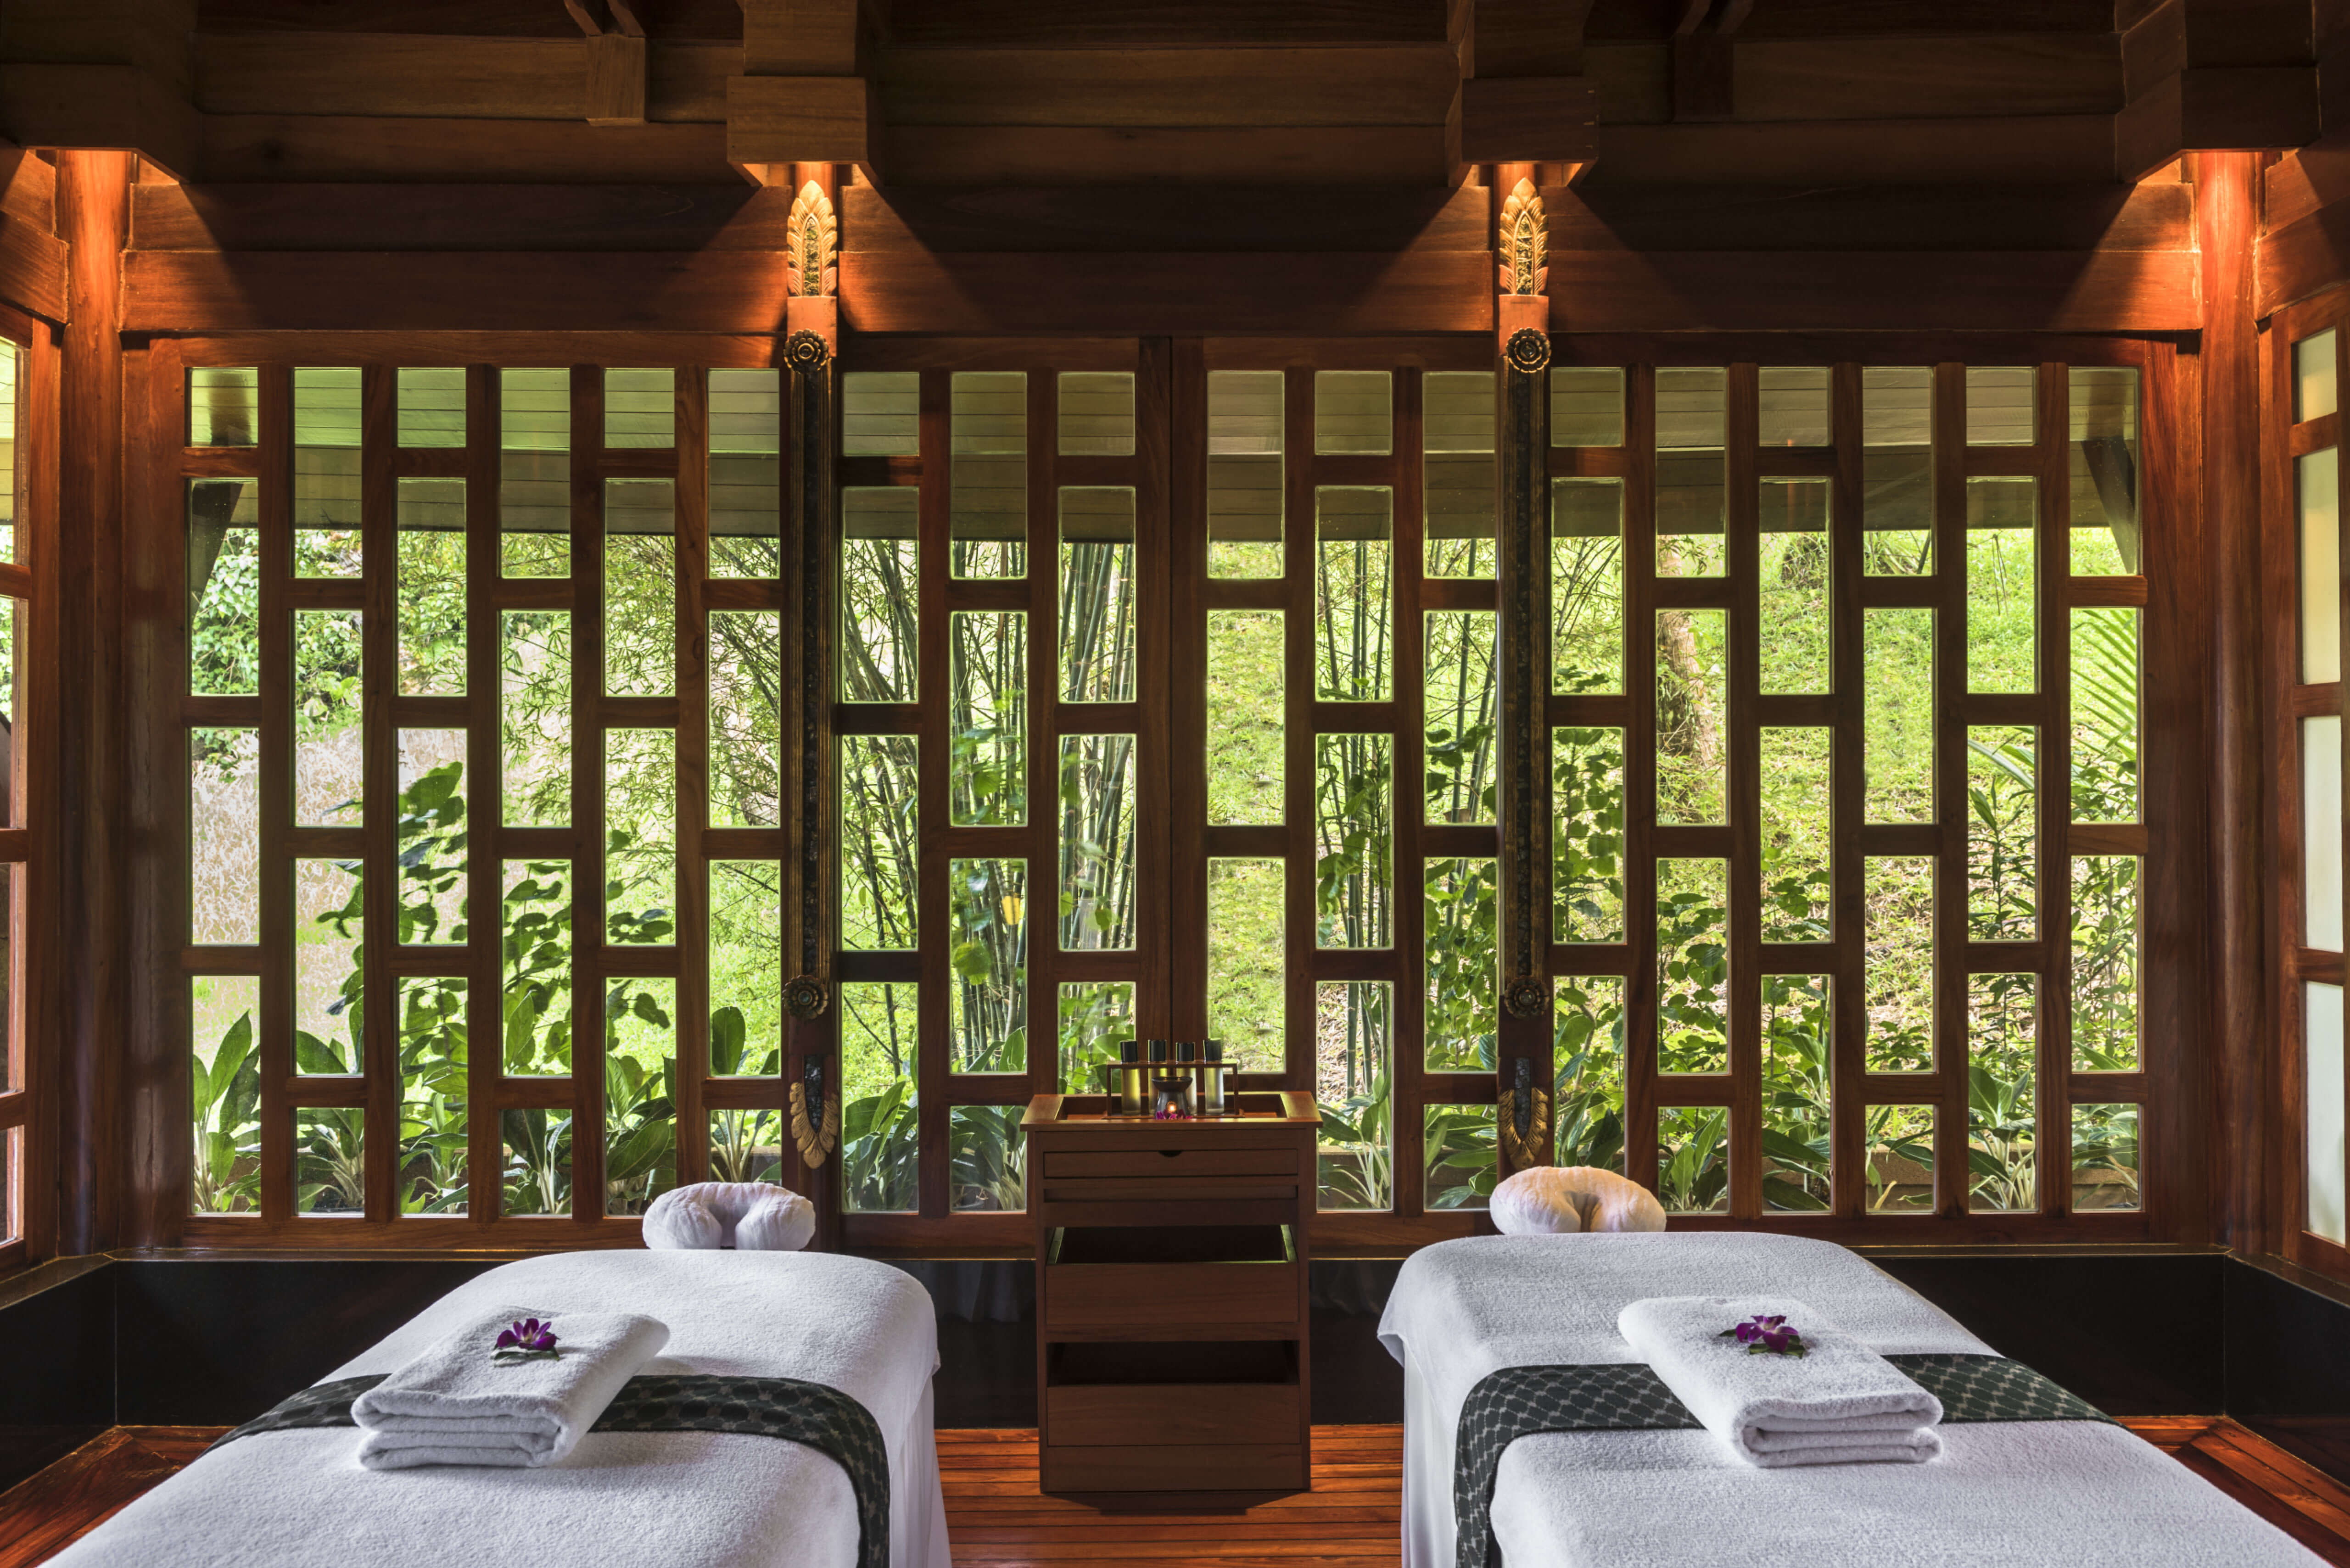 two spa beds in wooden decorated spa room